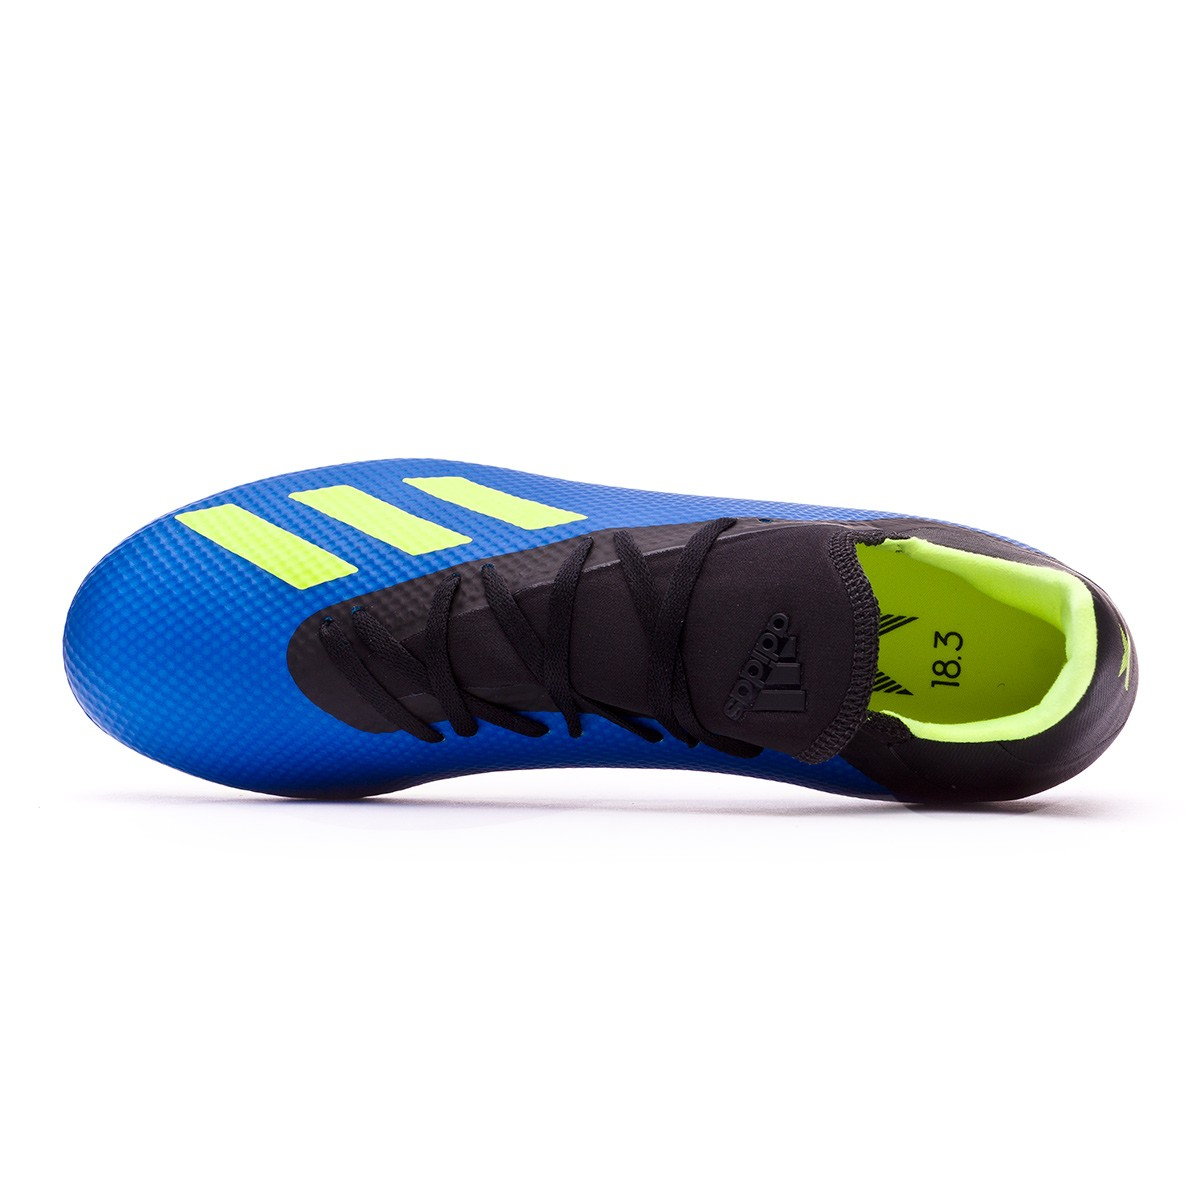 new styles a1789 97091 Boot adidas X 18.3 AG Foot blue-Solar yellow-Black - Football store Fútbol  Emotion